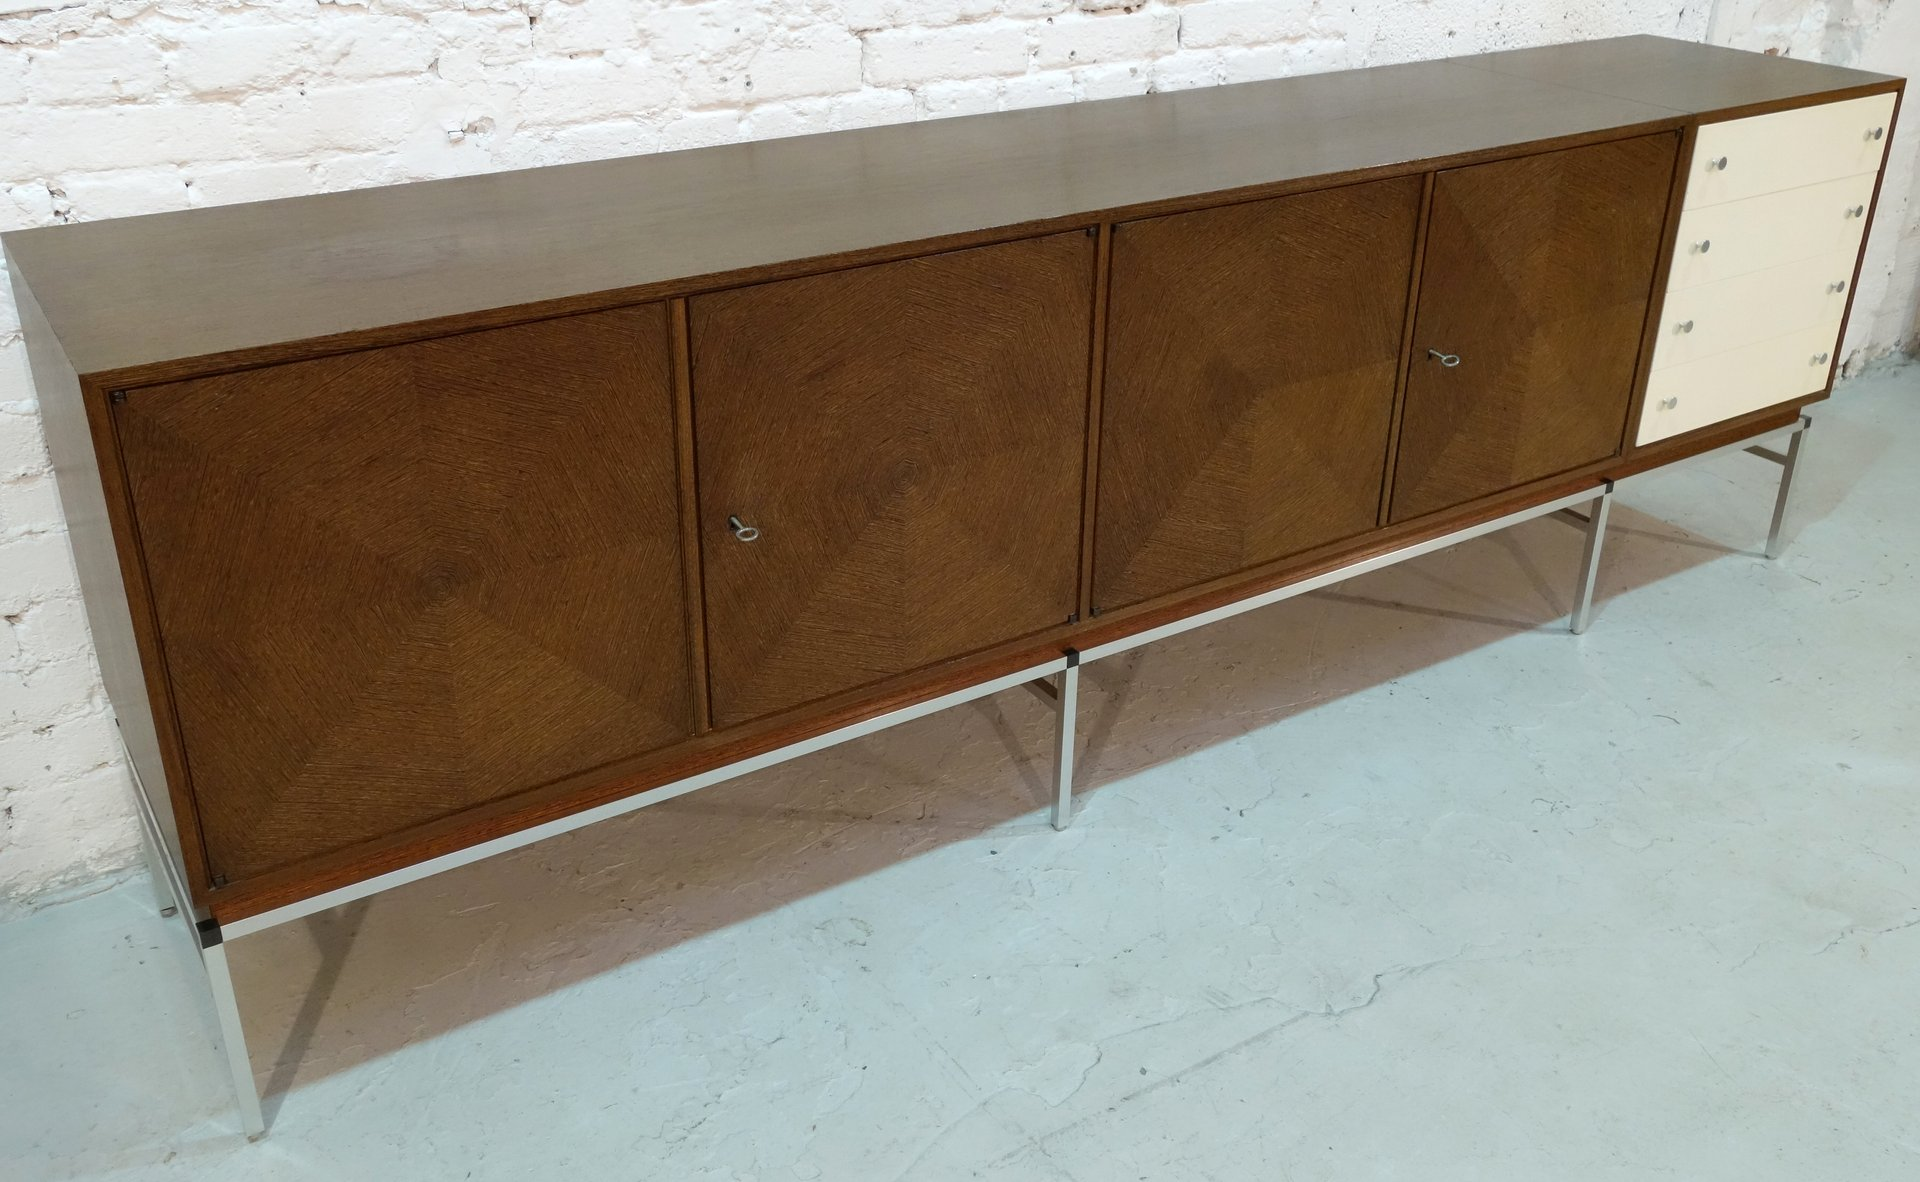 Wenge sideboard from w rner 1960s for sale at pamono - Sideboard wenge ...